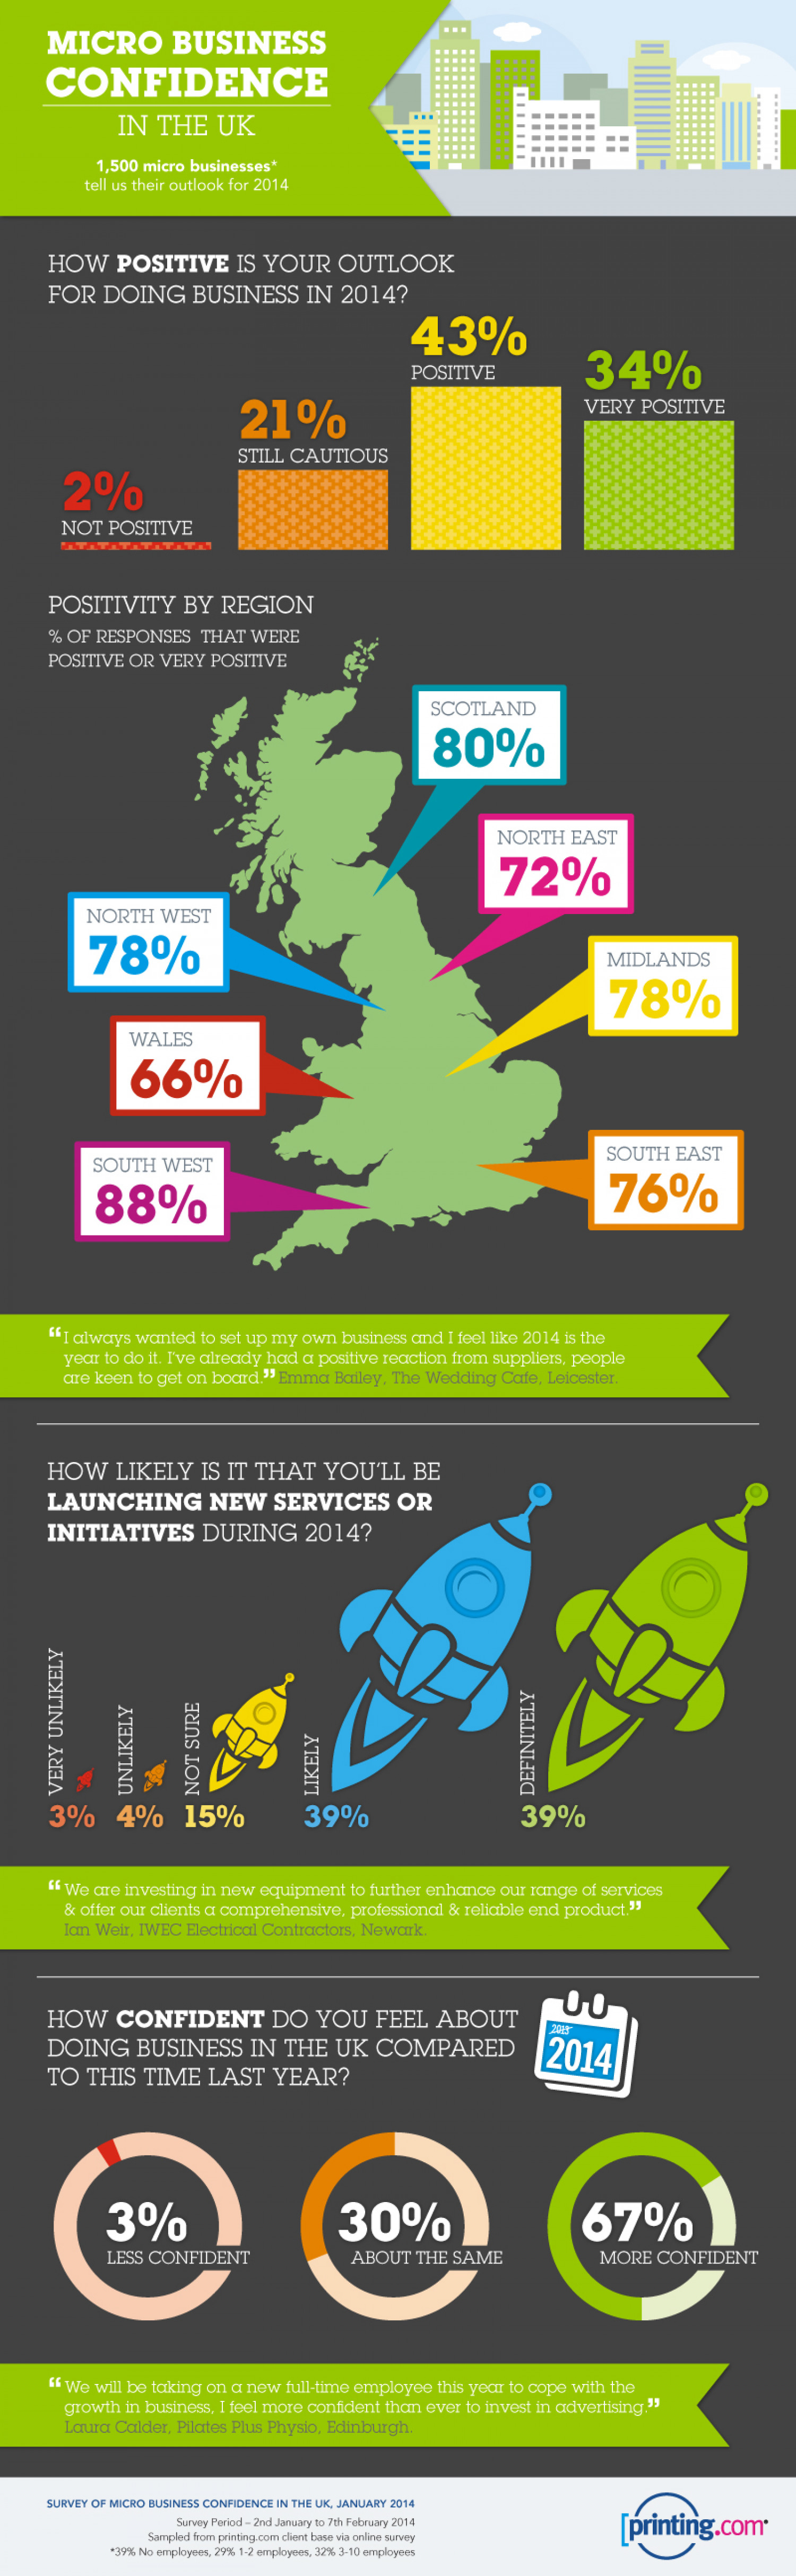 Micro Business Confidence In The UK Infographic